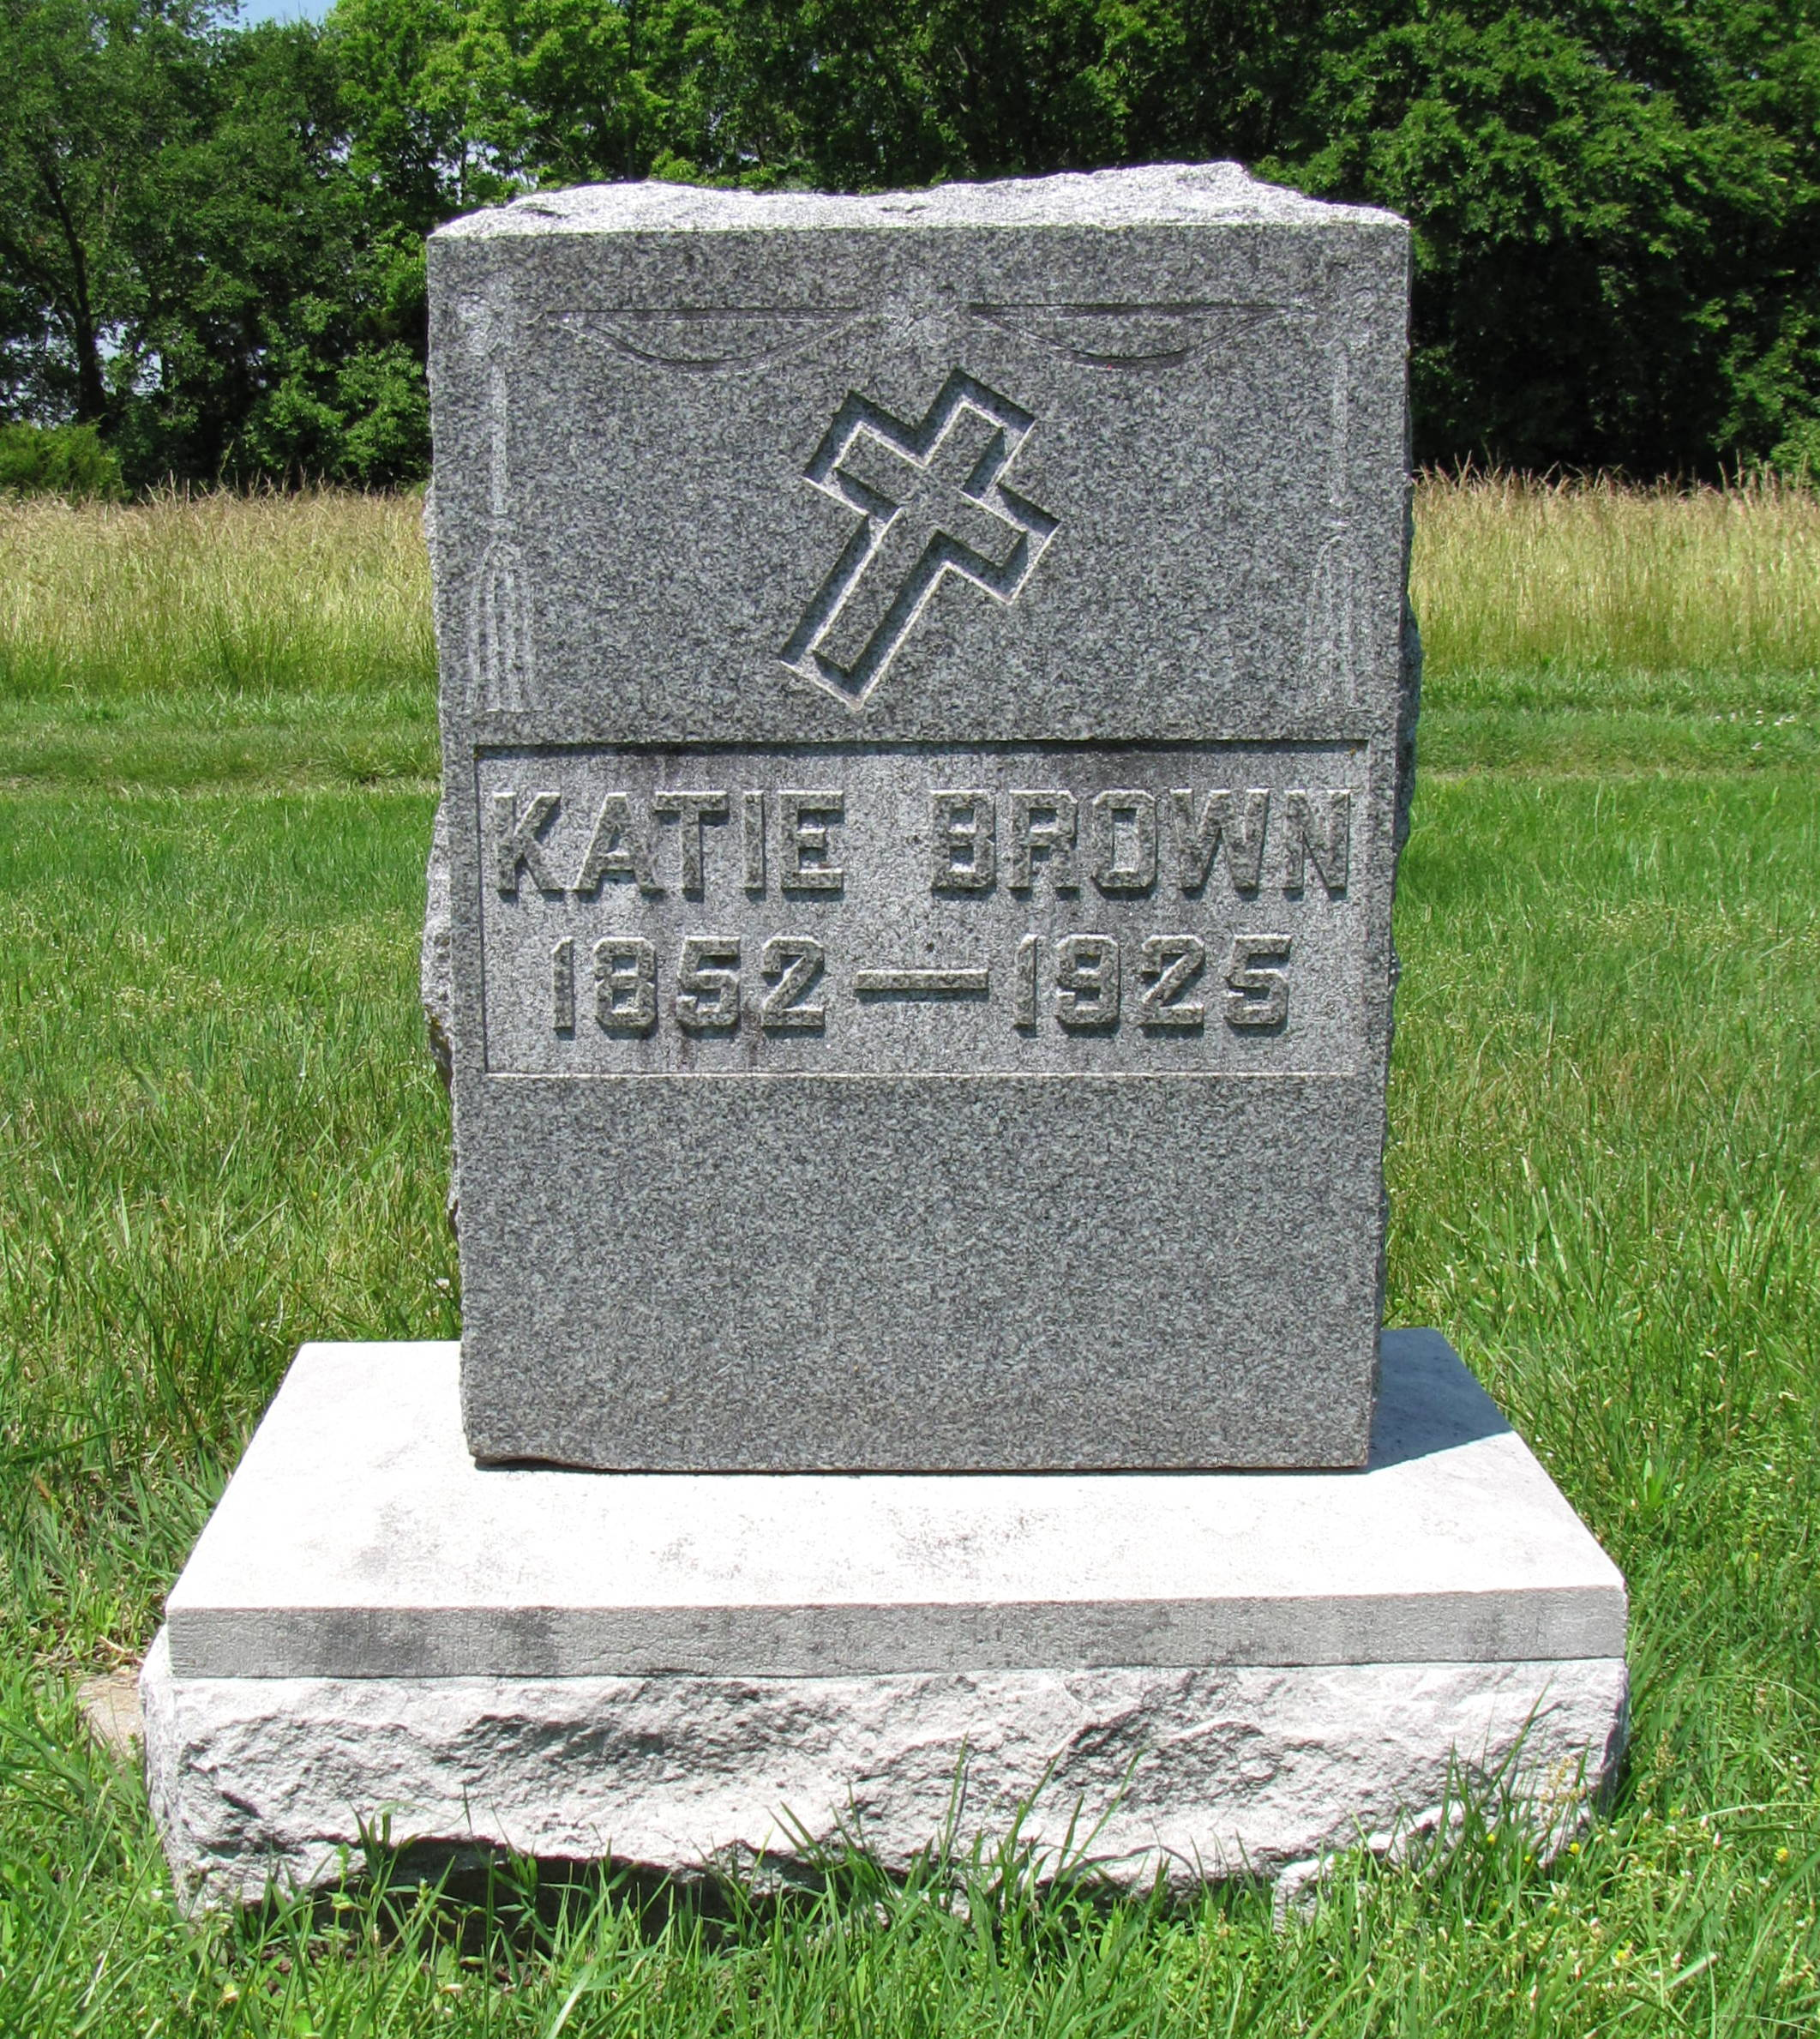 Kate Brown